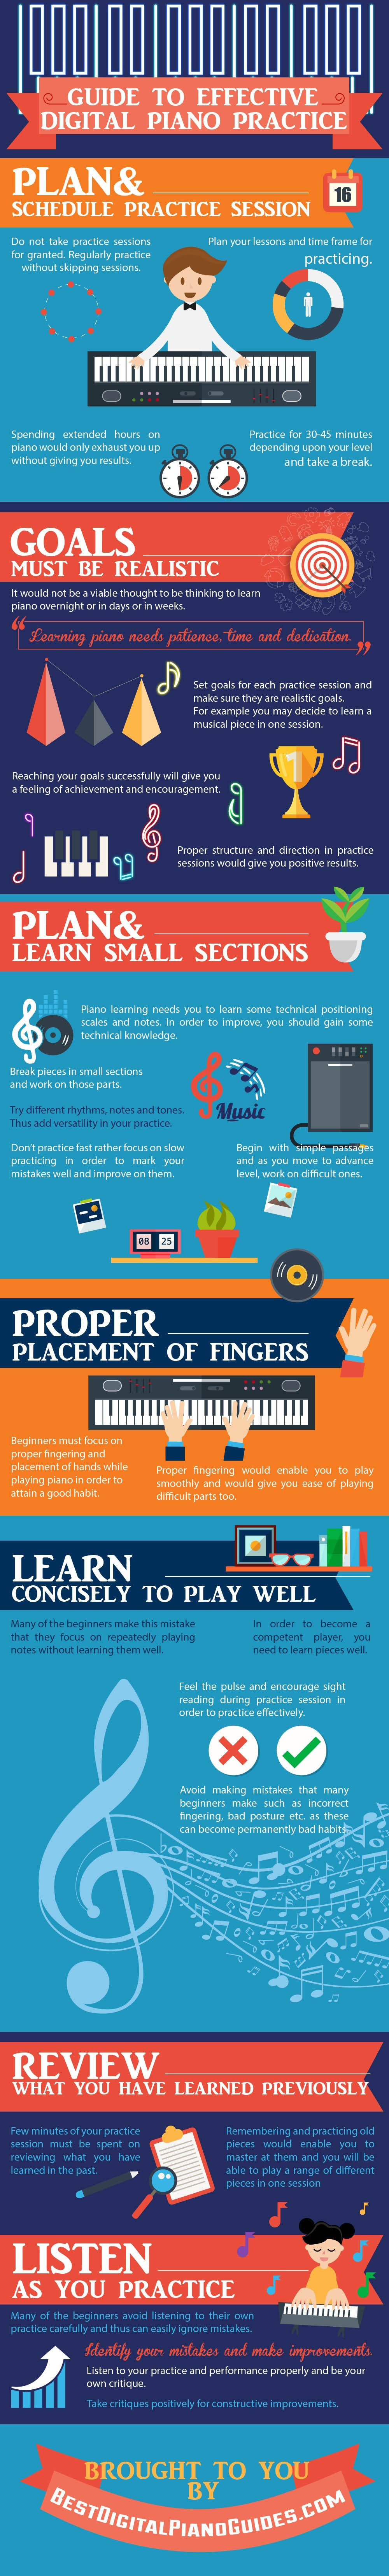 InfoGraphic - Guide to effective digital piano practice